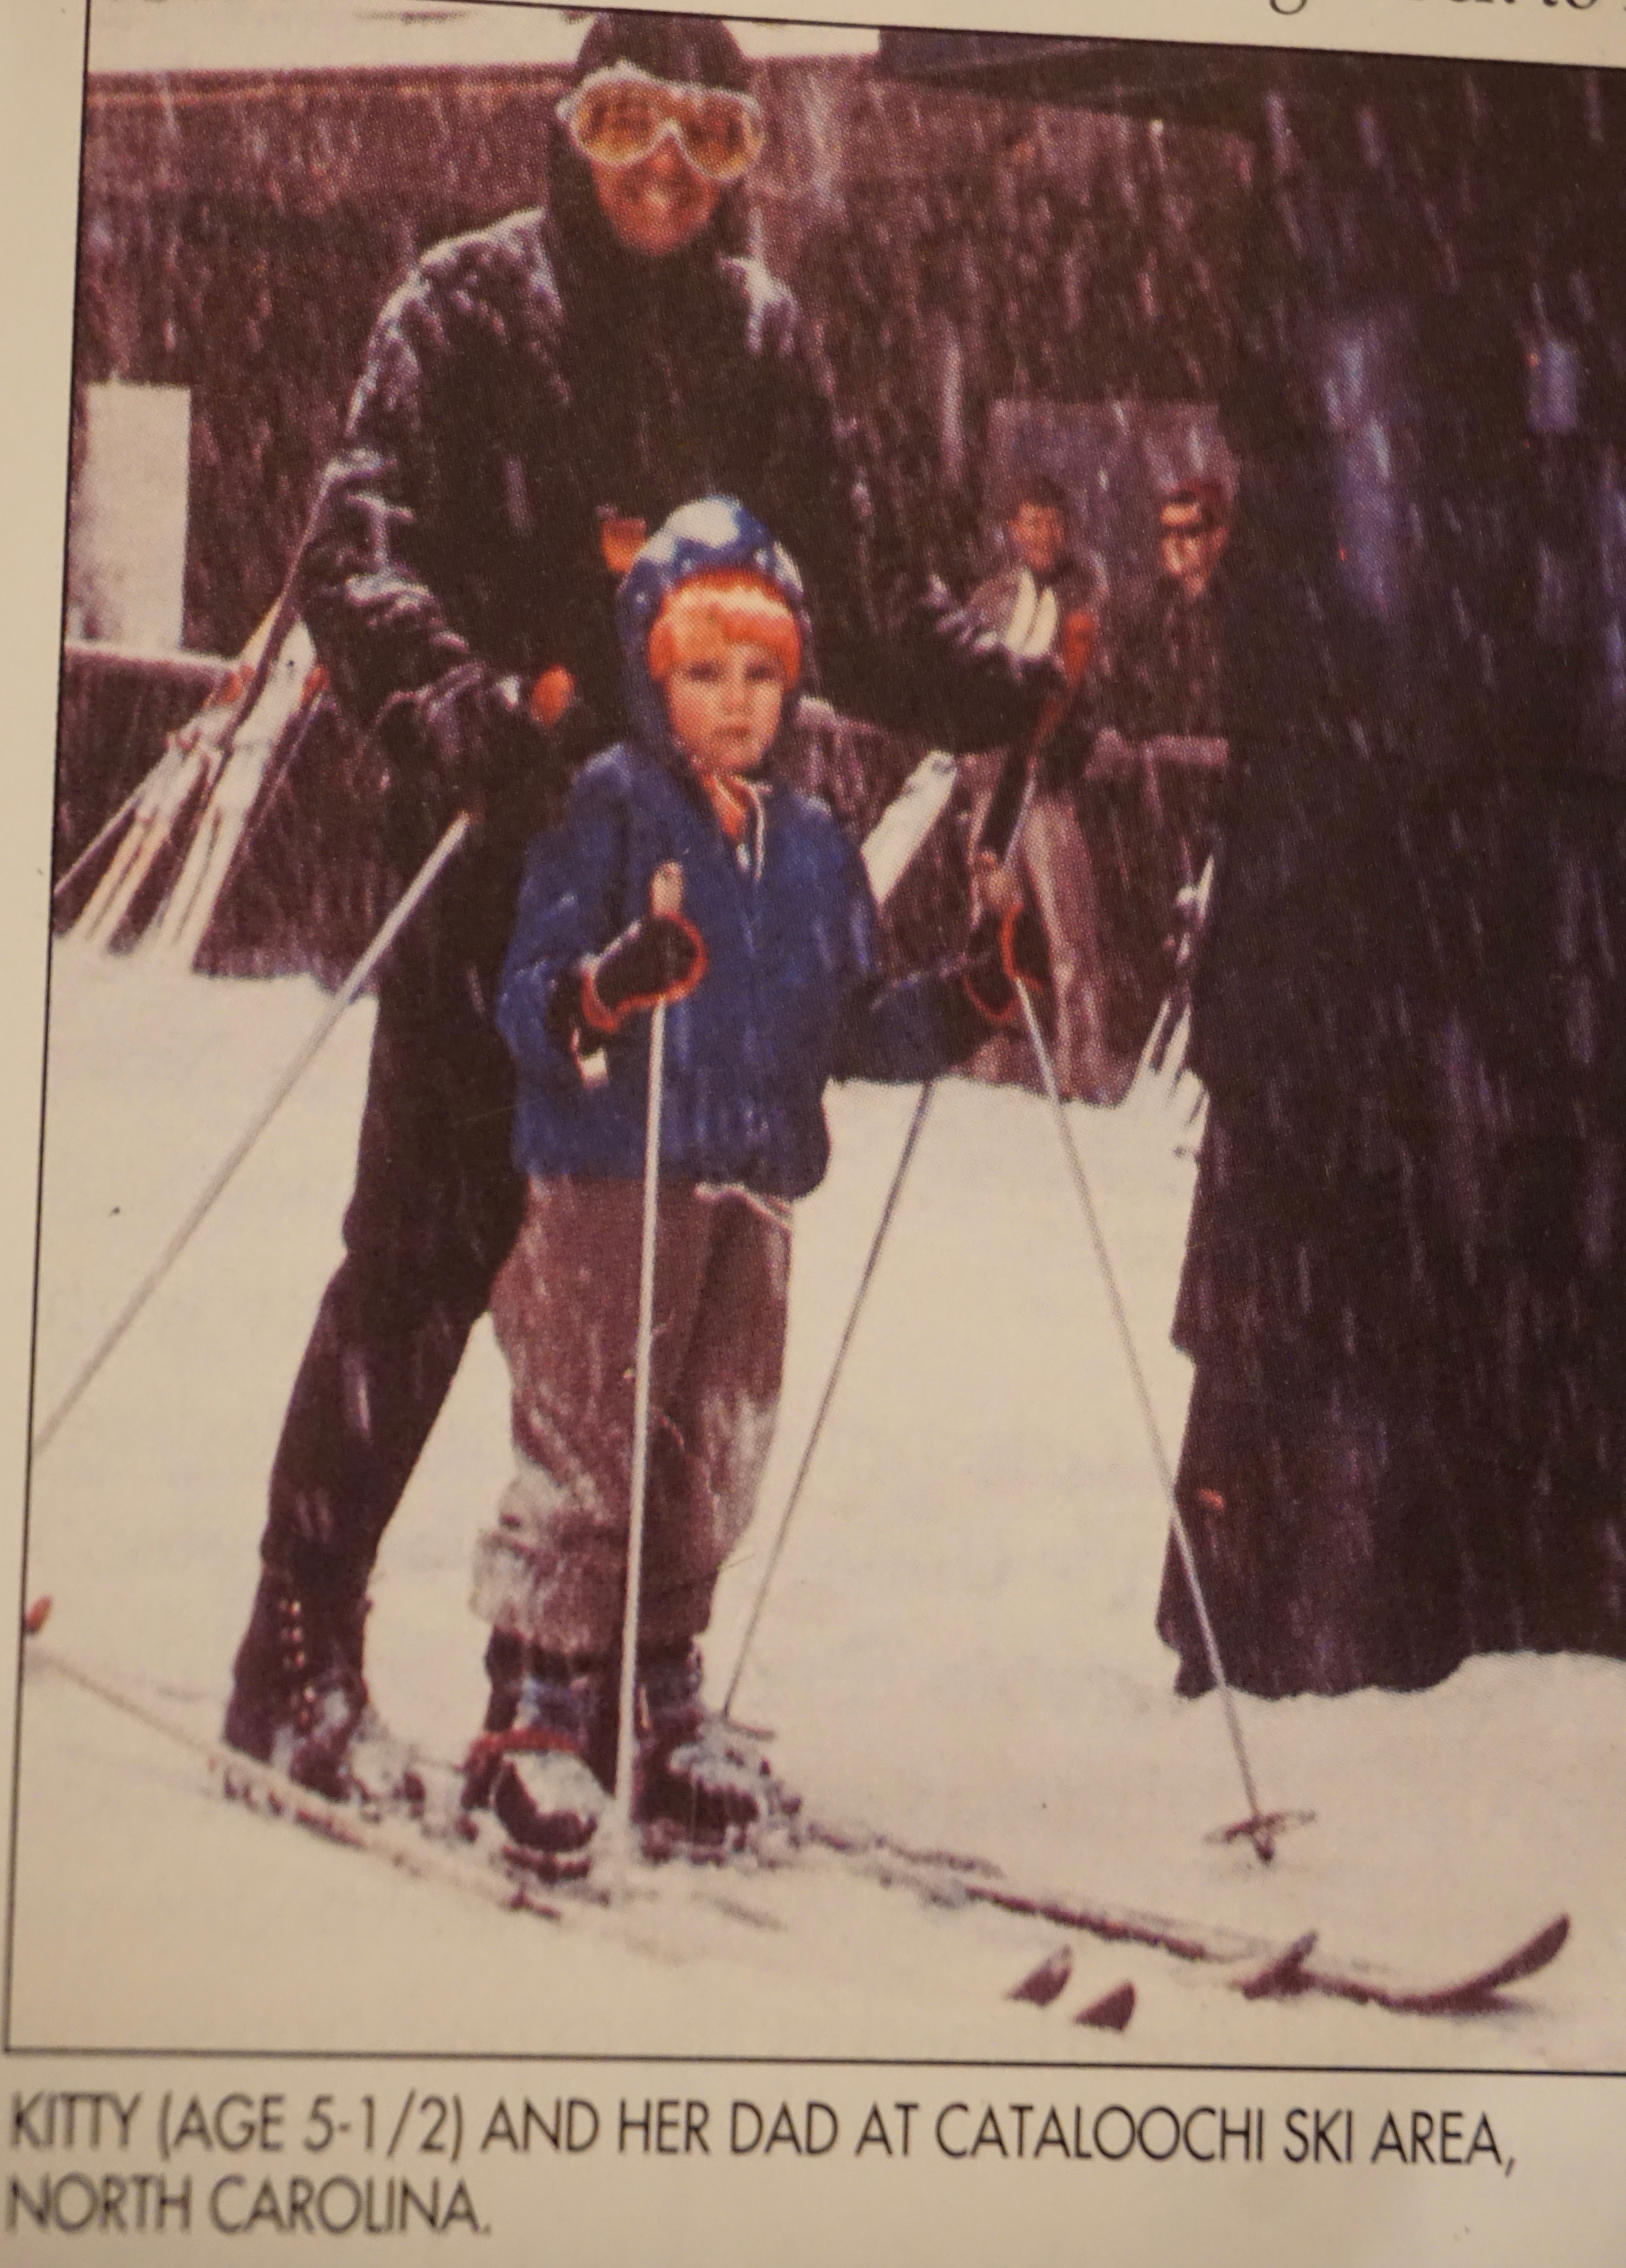 Newspaper clipping of Kitty Calhoun age 5-years skiing with her Dad at Cataloochi ski area, North Carolina